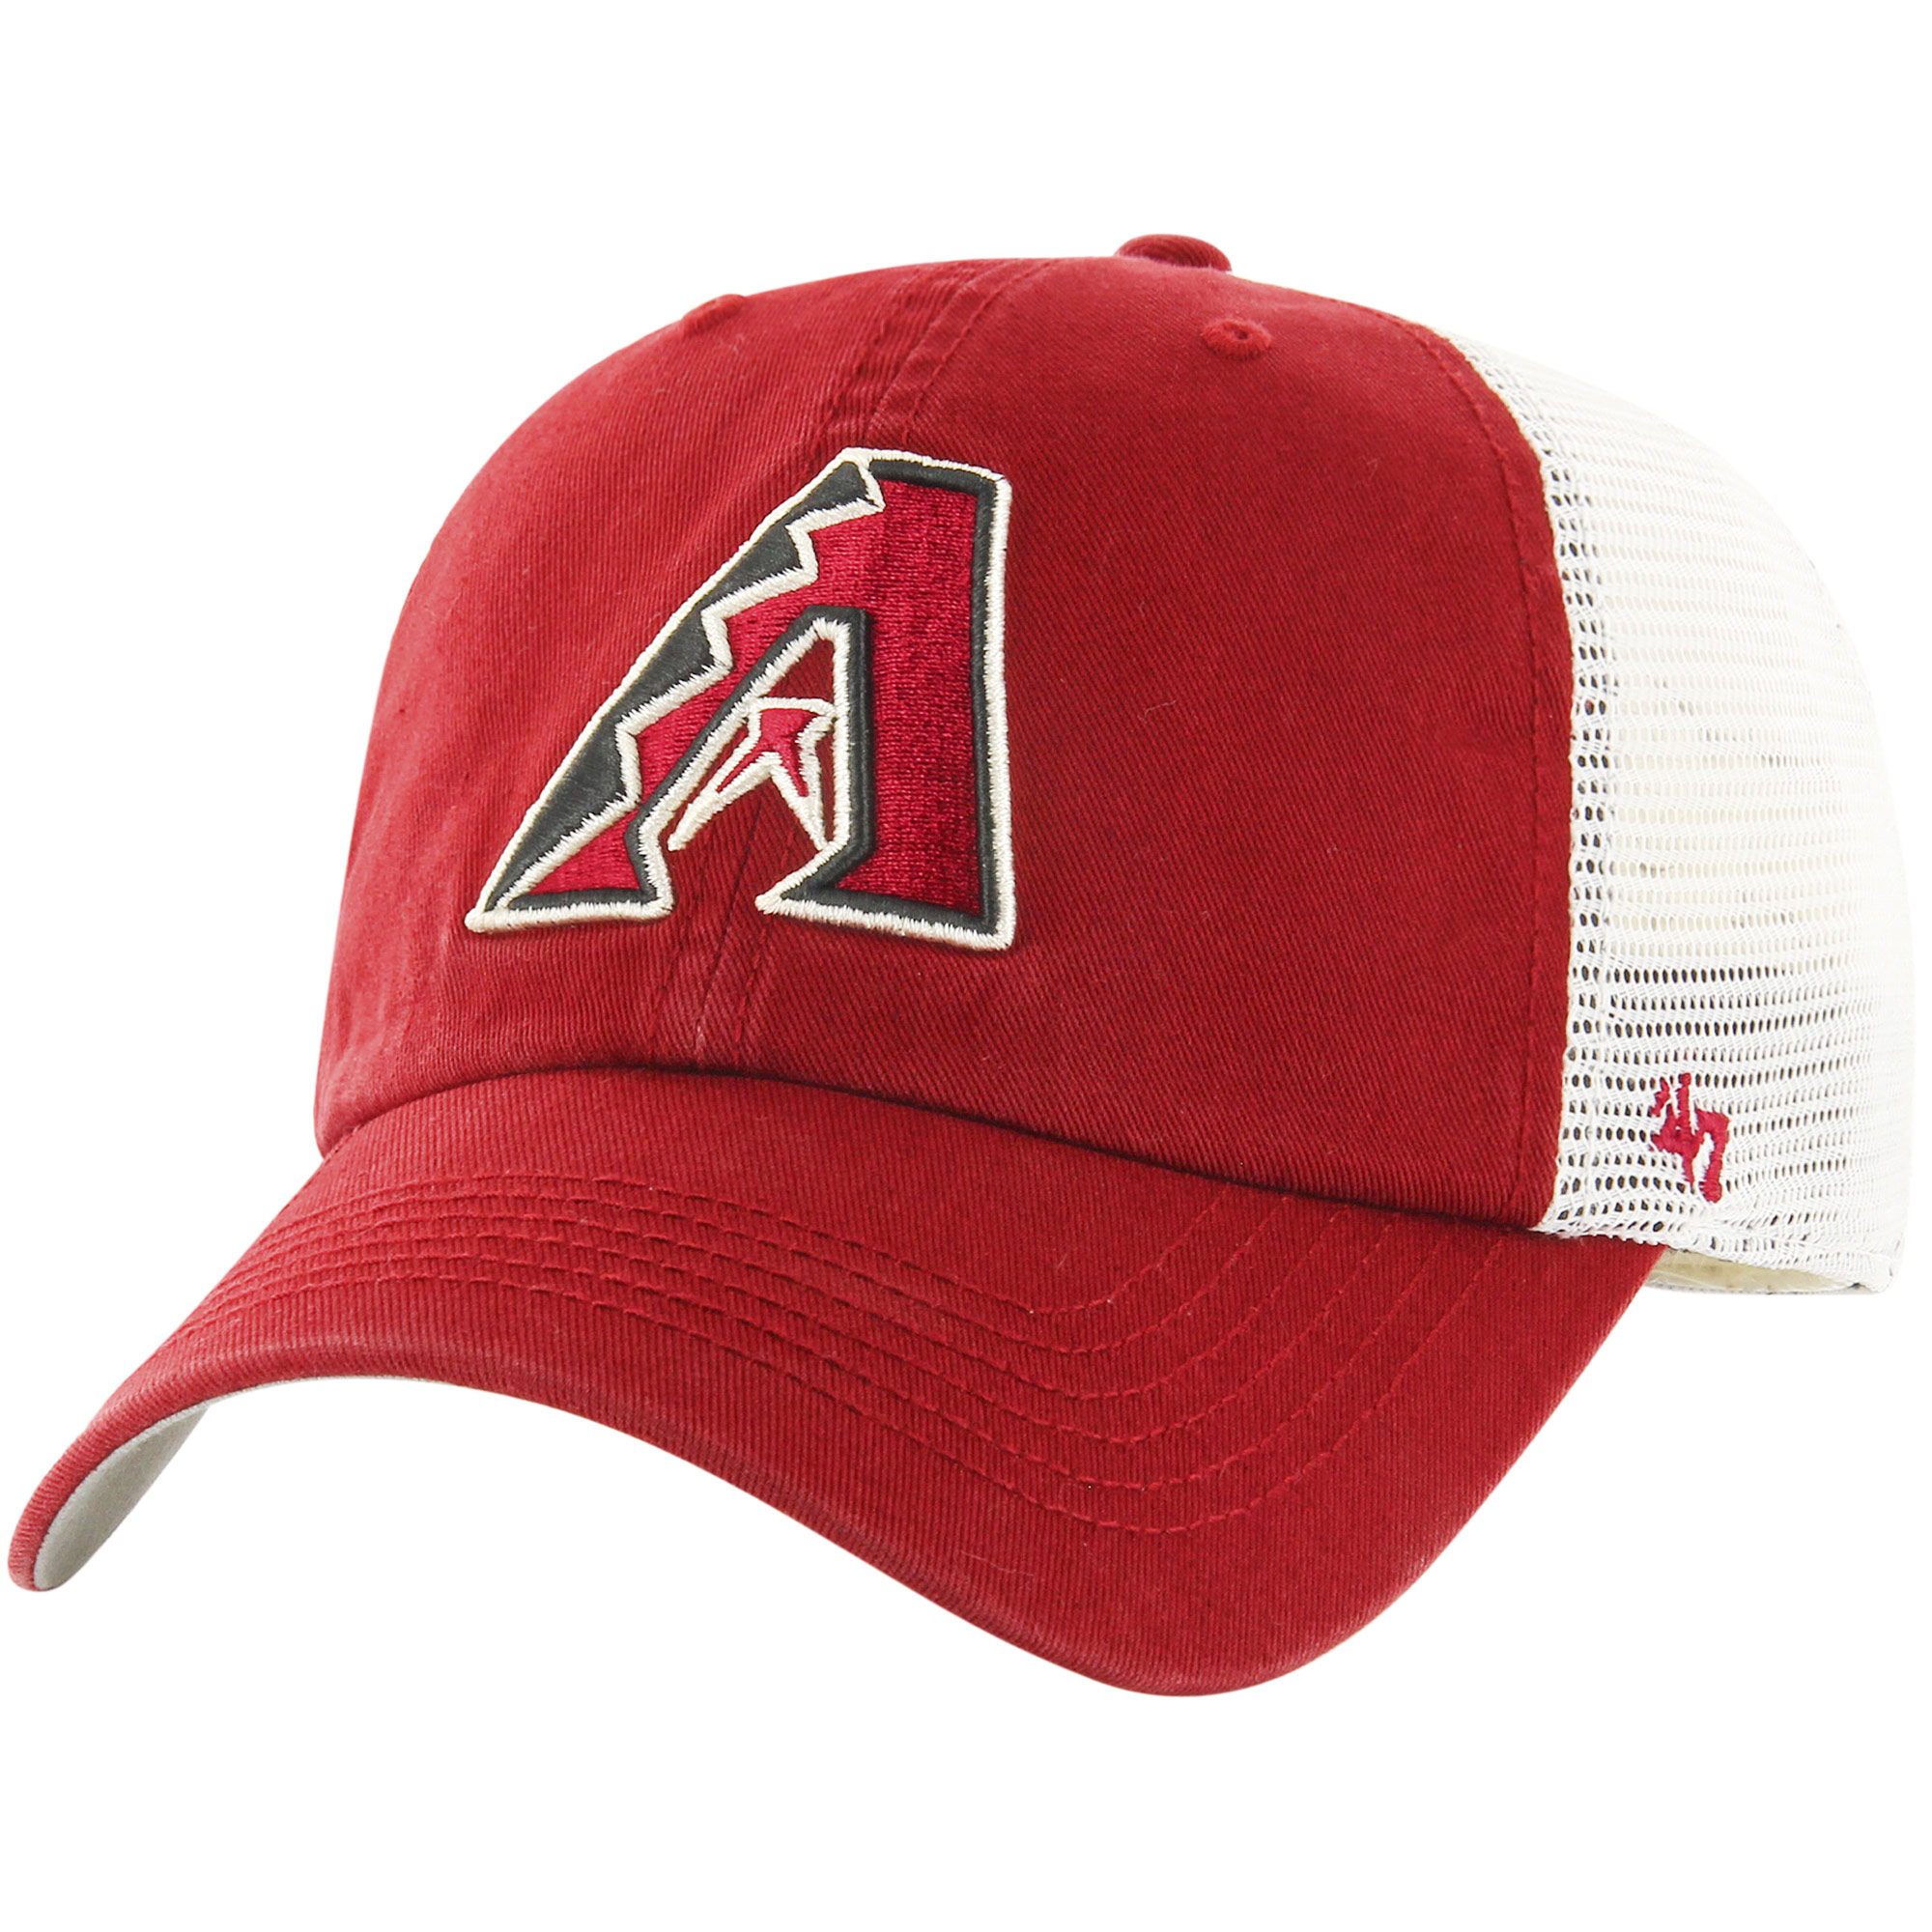 Arizona Diamondbacks '47 Blue Hill Closer Flex Hat - Red/White